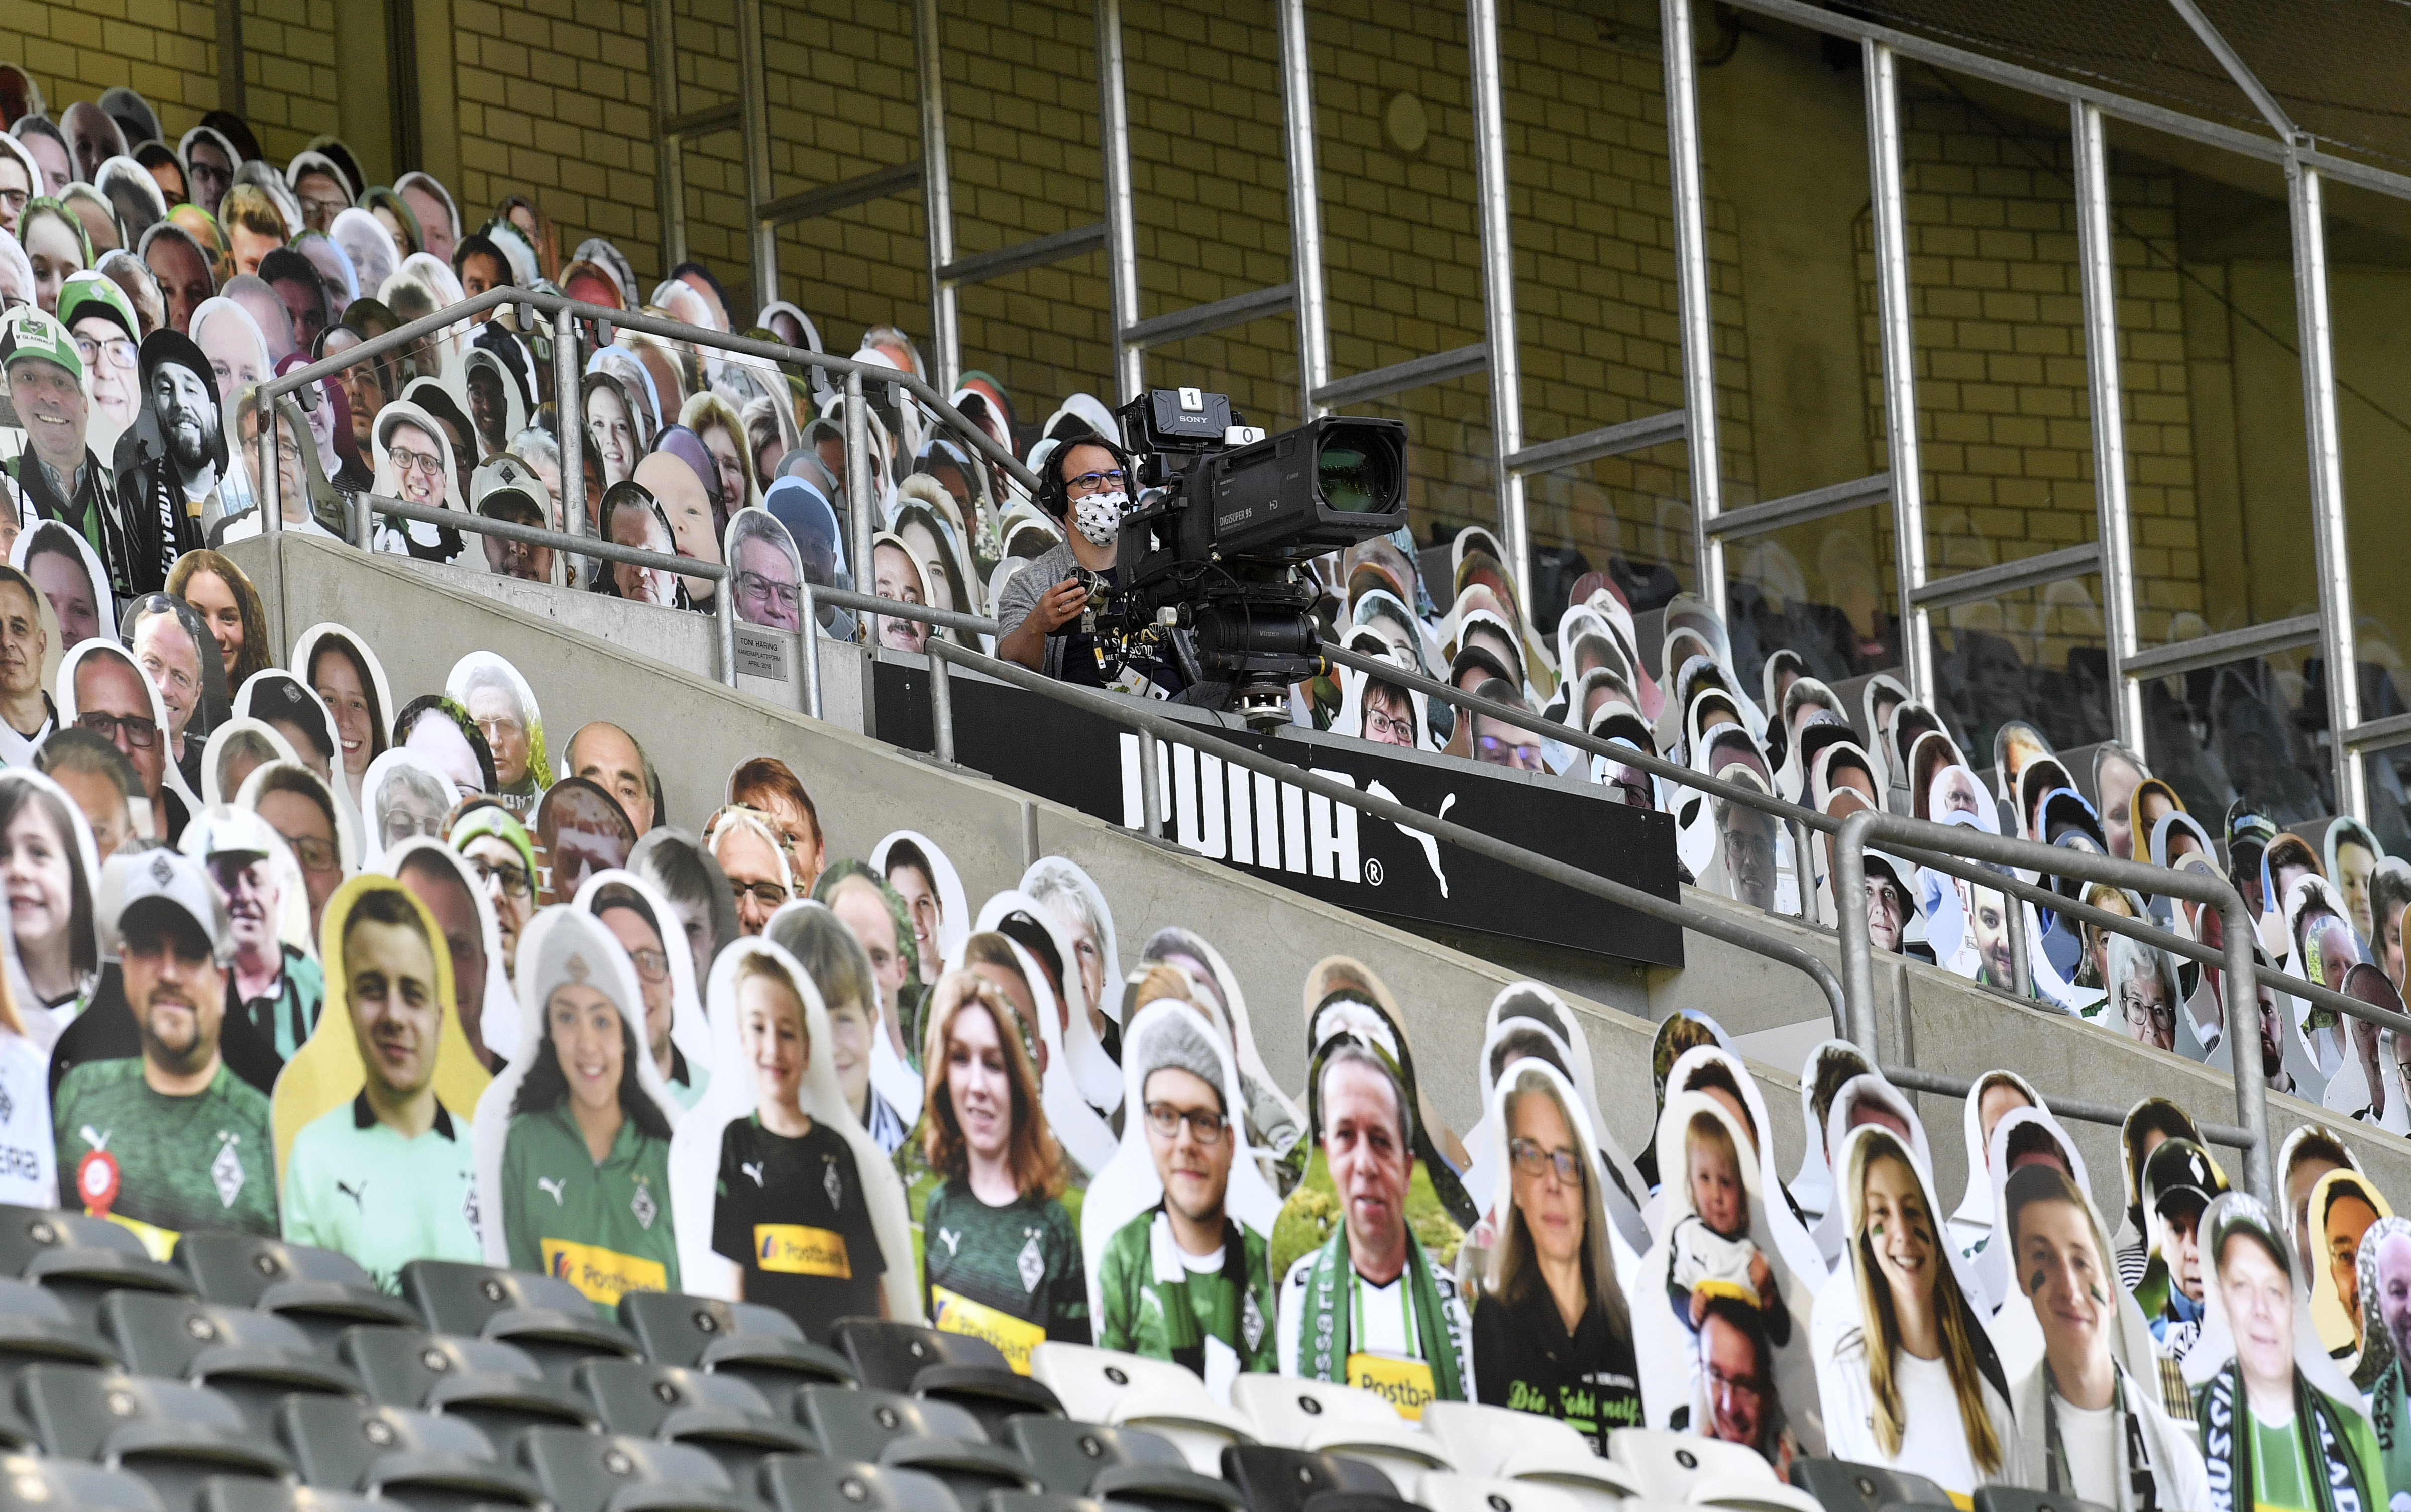 A TV cameraman wears a face mask seen between cardboards with photos of Moenchengladbach fans displayed on the stands prior the German Bundesliga soccer match between Borussia Moenchengladbach and Union Berlin in Moenchengladbach, Germany, Sunday, May 31, 2020. The German Bundesliga becomes the world's first major soccer league to resume after a two-month suspension because of the coronavirus pandemic. (AP Photo/Martin Meissner, Pool)